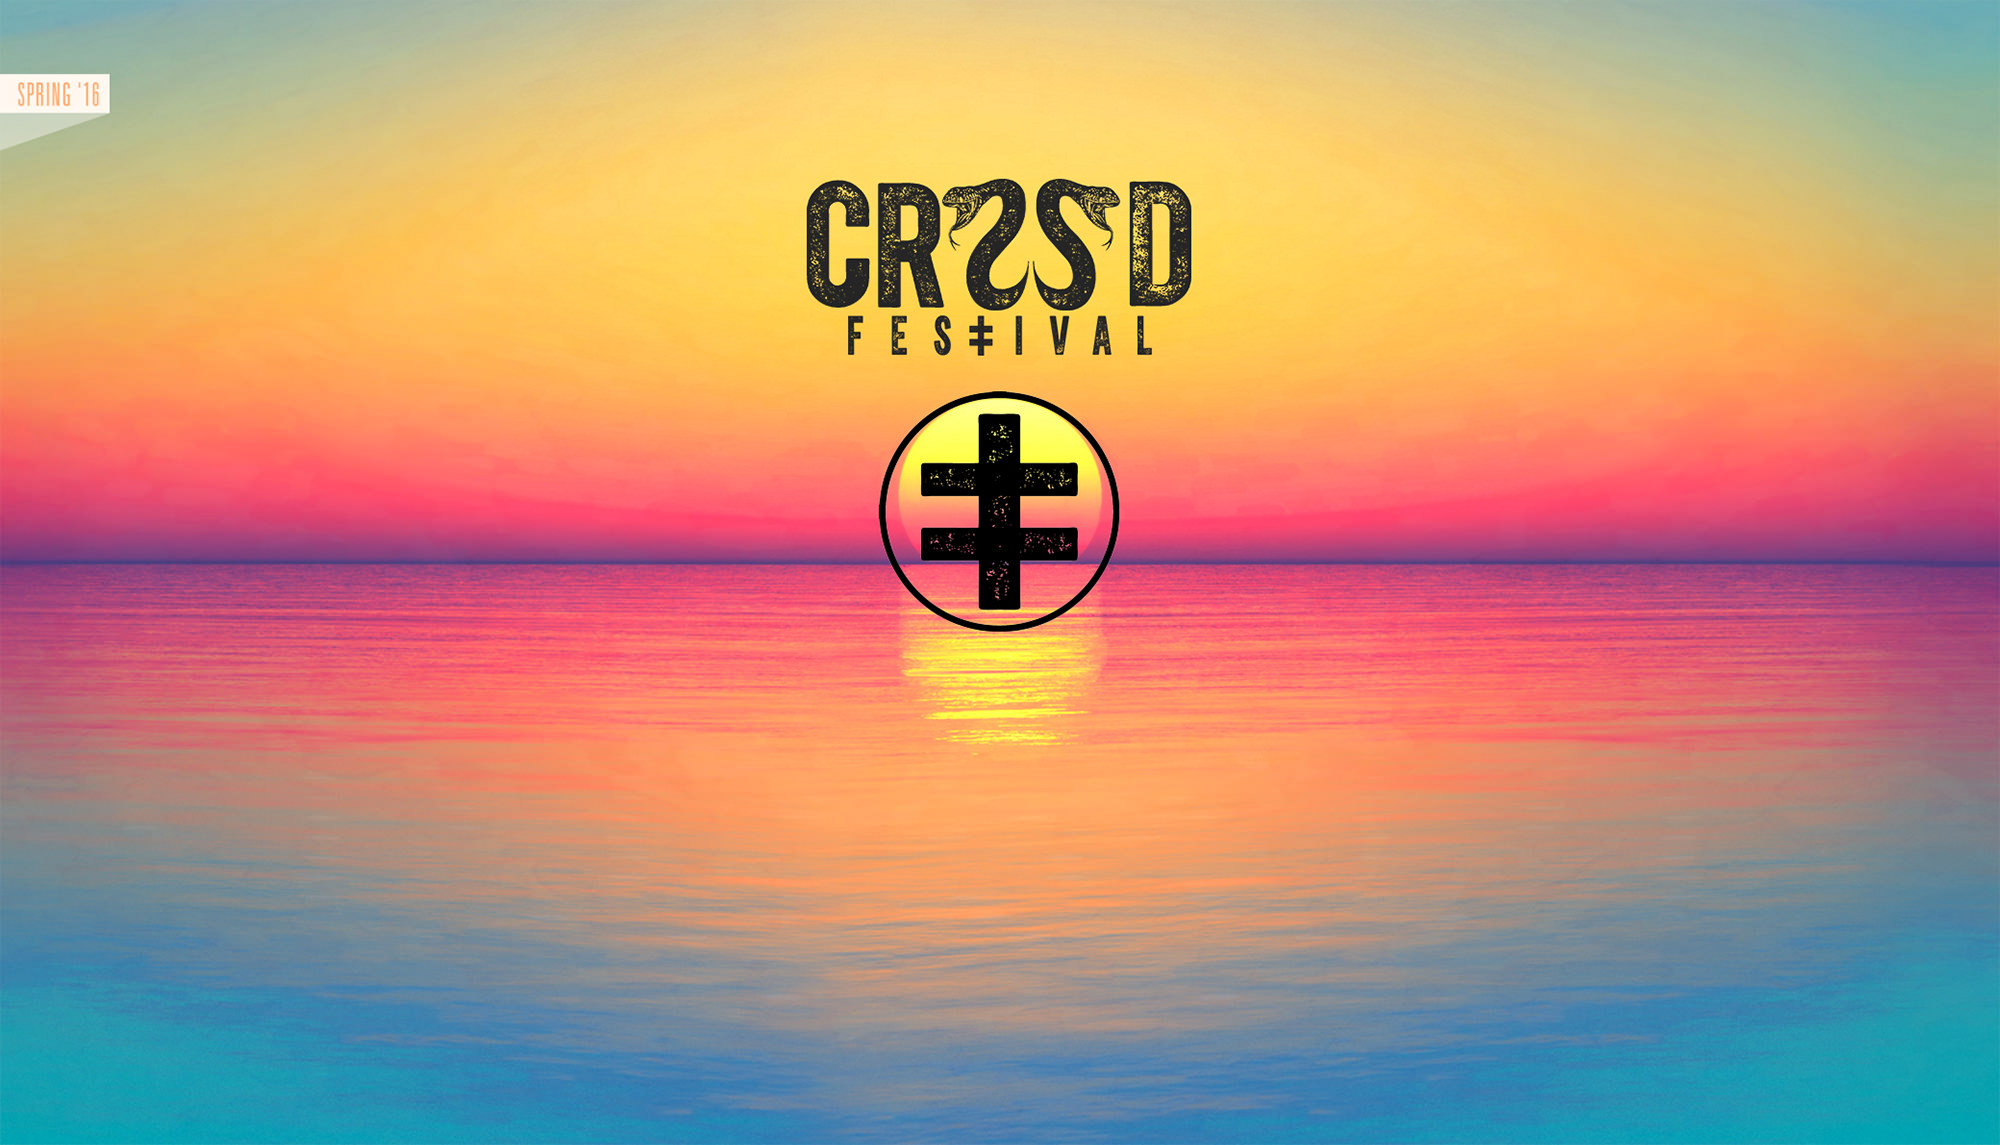 CRSSD Festival partners with WeTransfer to offer free music and cocktail recipes ile ilgili görsel sonucu